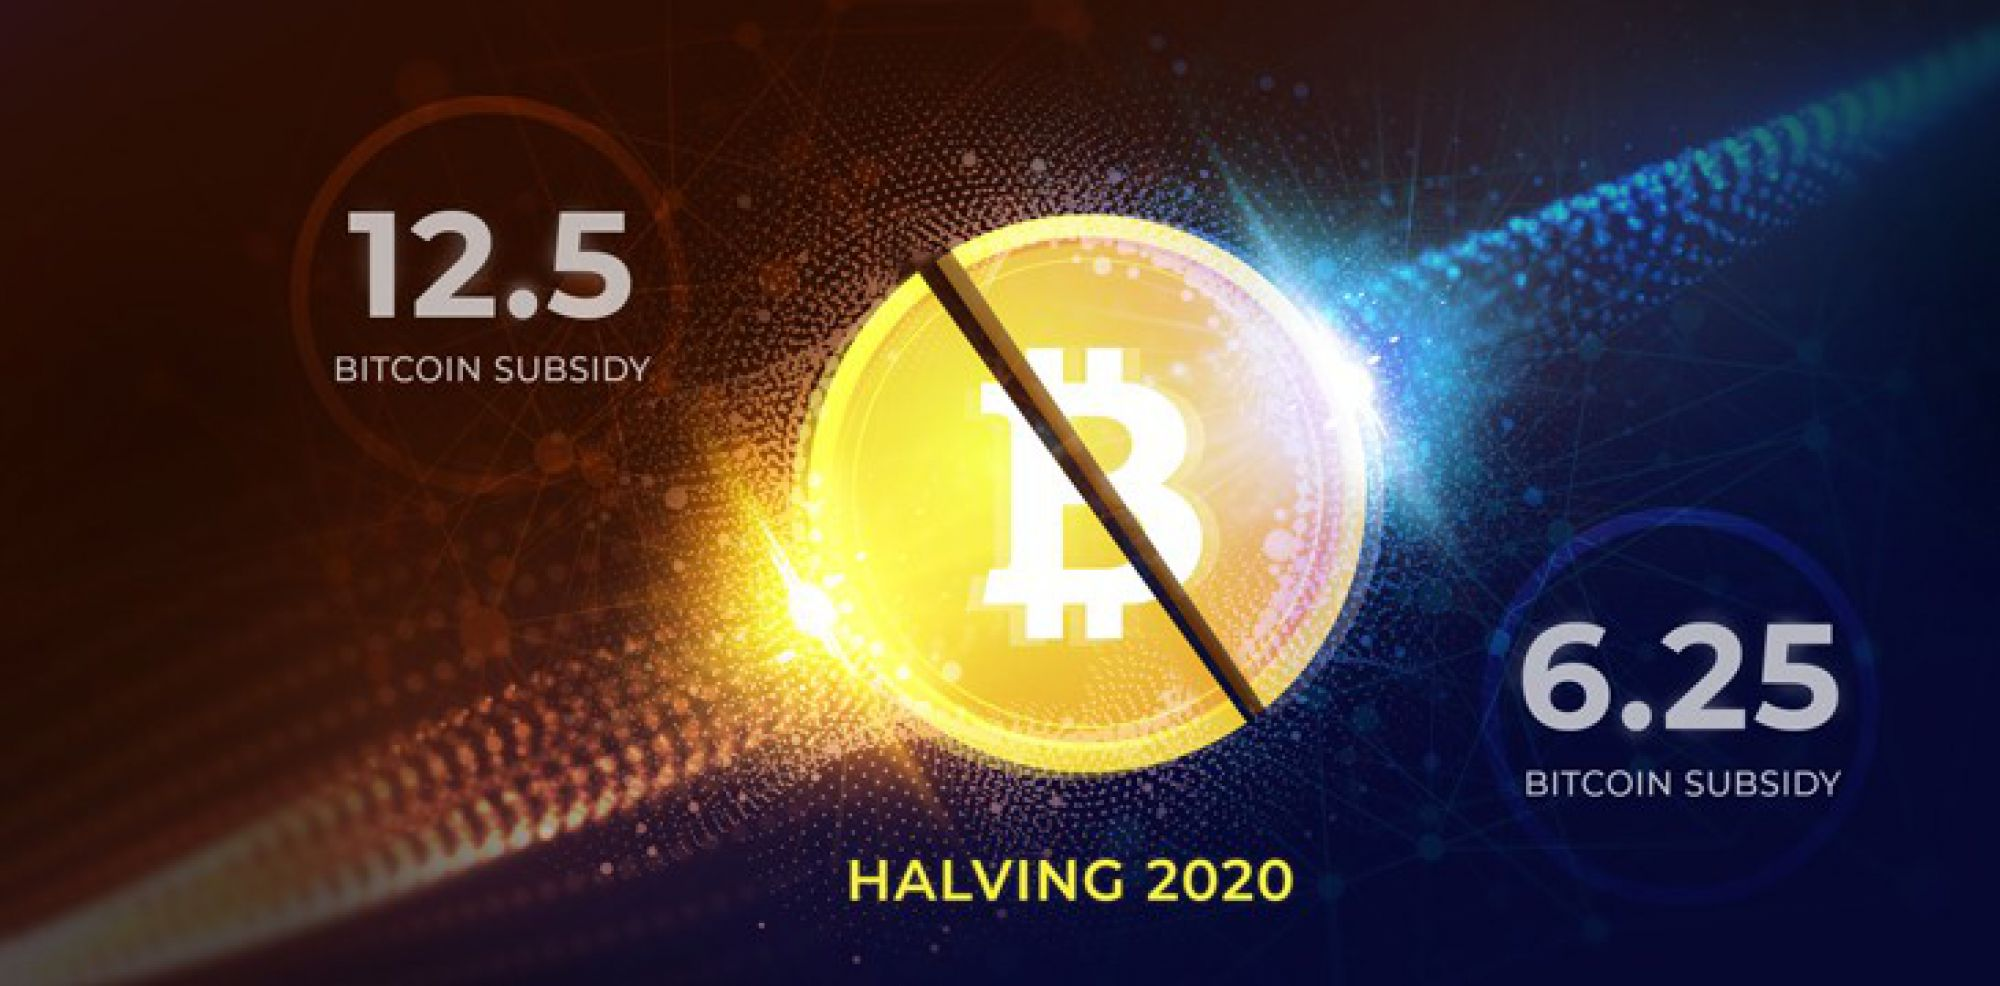 Bitcoin halving is behind us! From today only 6.25 BTC per block